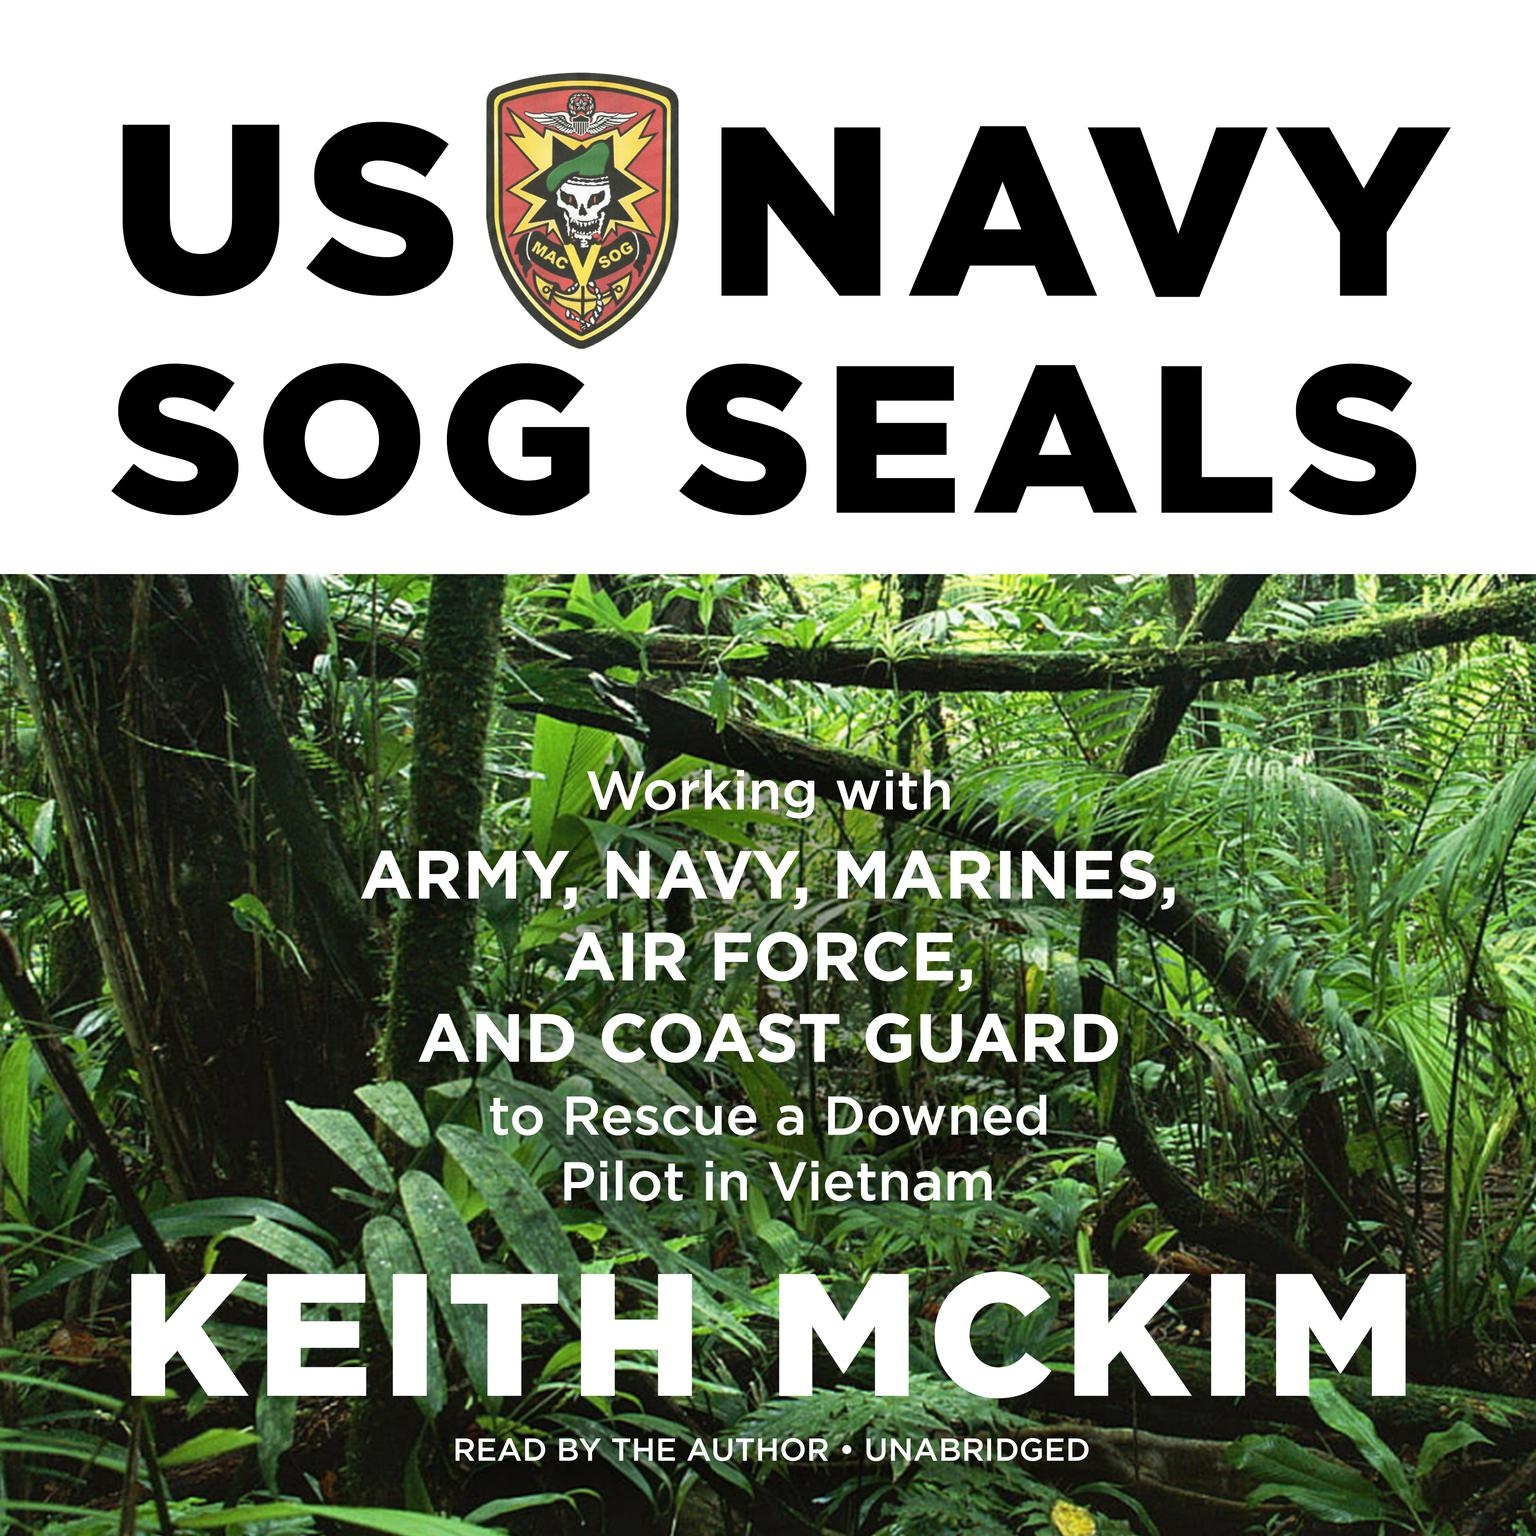 Printable US Navy SOG SEALs: Working with Army, Navy, Marines, Air Force, and Coast Guard to Rescue a Downed Pilot in Vietnam Audiobook Cover Art